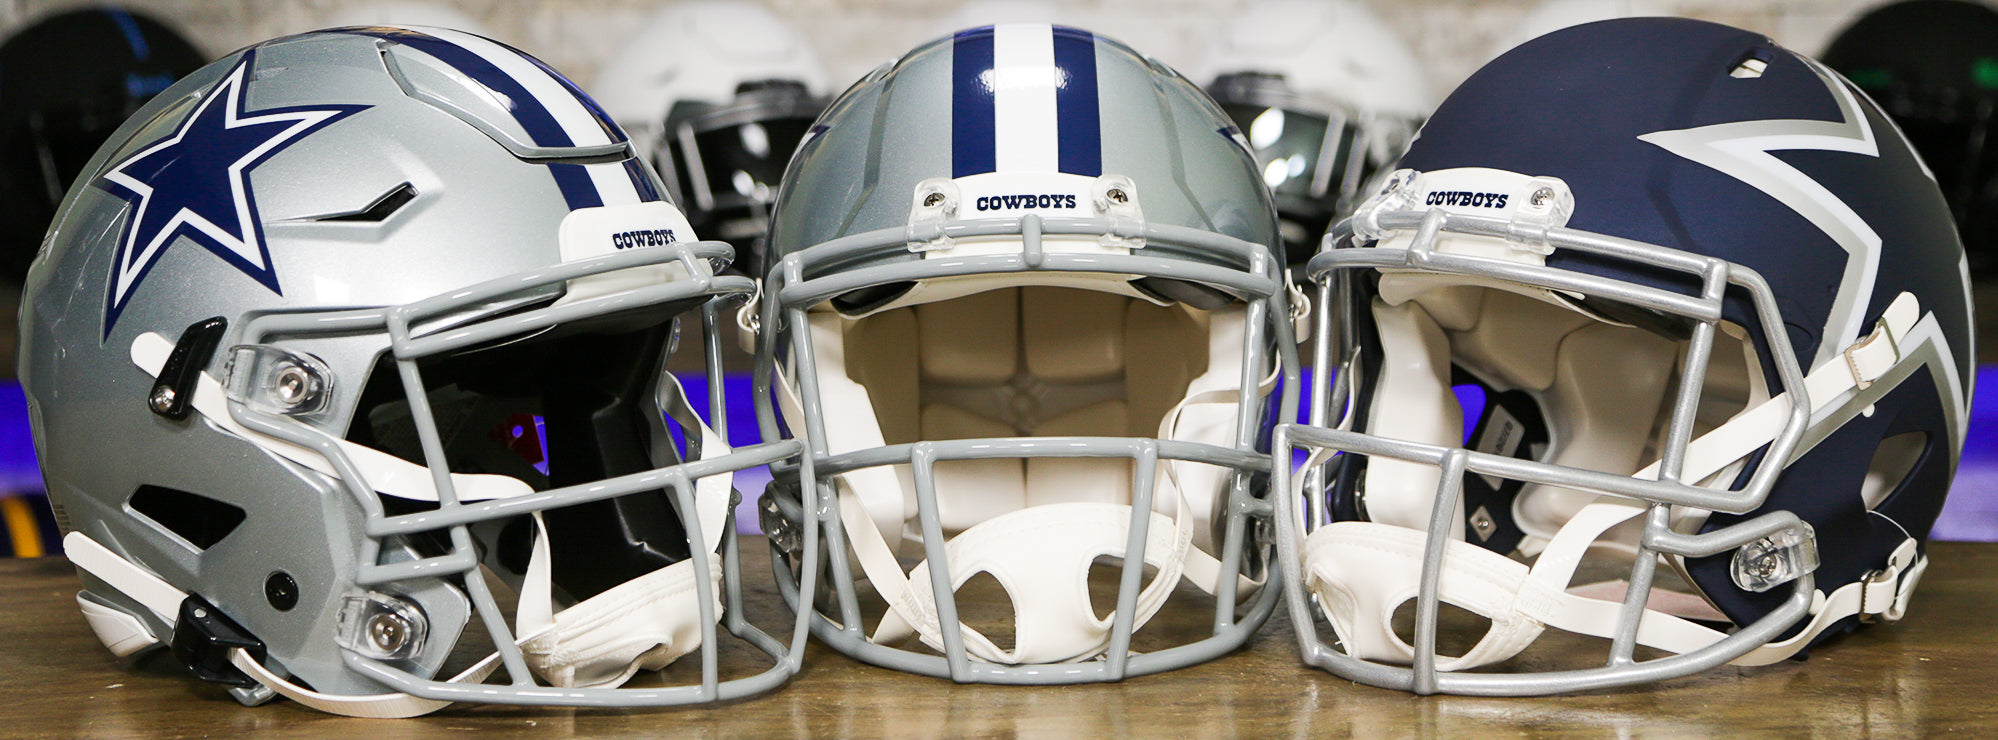 Dallas Cowboys Helmets Wide